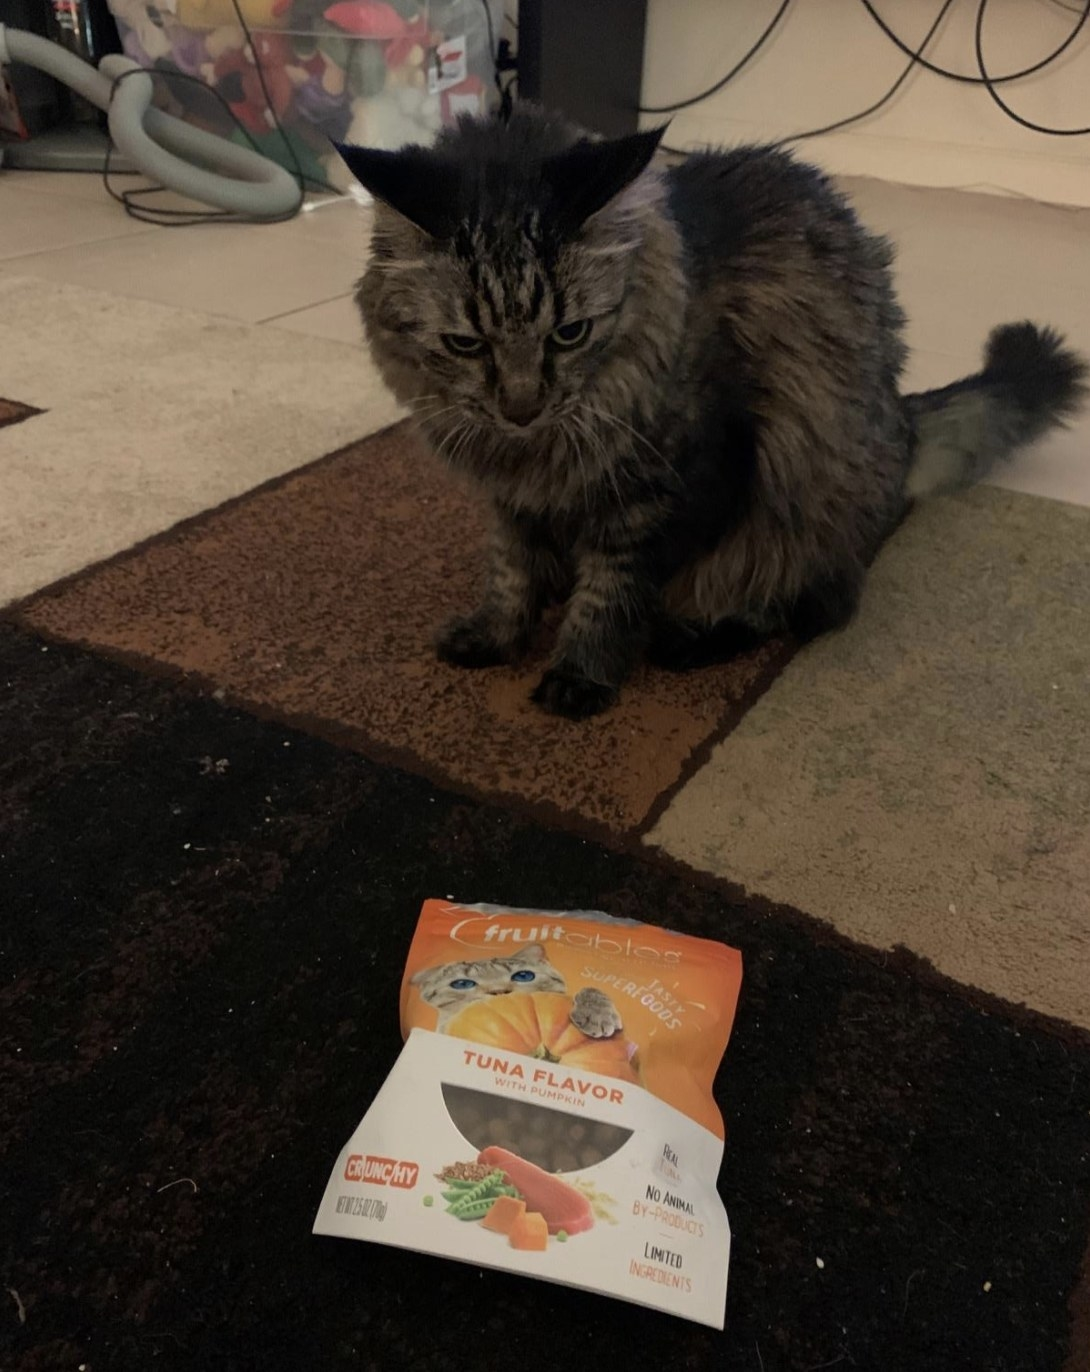 A black and grey long-haired cat is sitting next to pack of fruitables crunchy cat treats